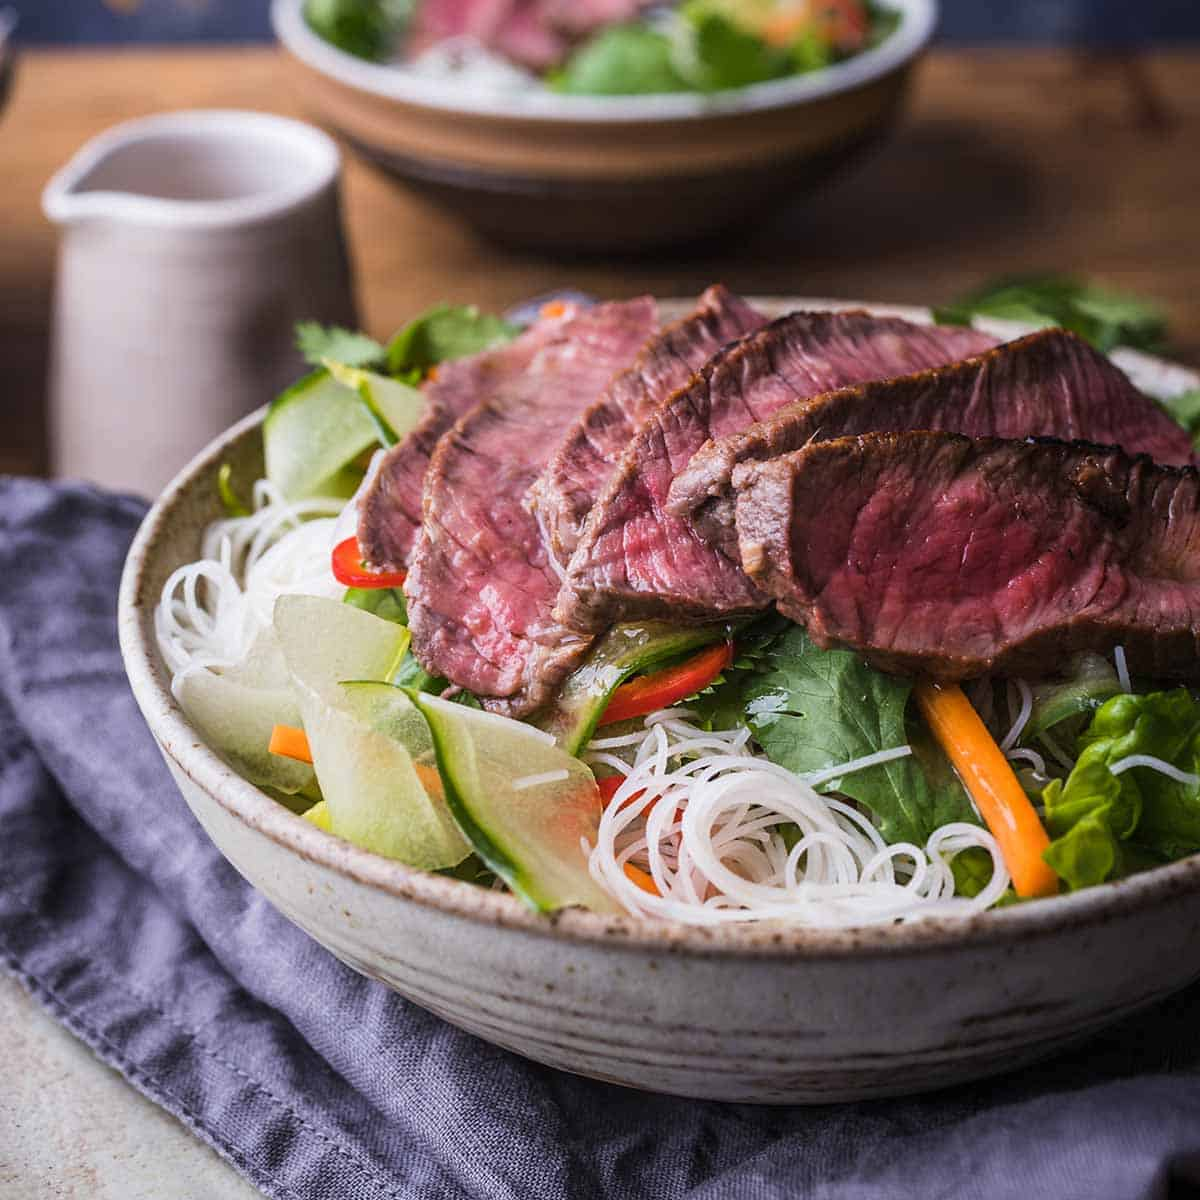 Vietnamese beef salad with thinly sliced steak in a bowl over a blue kitchen towel